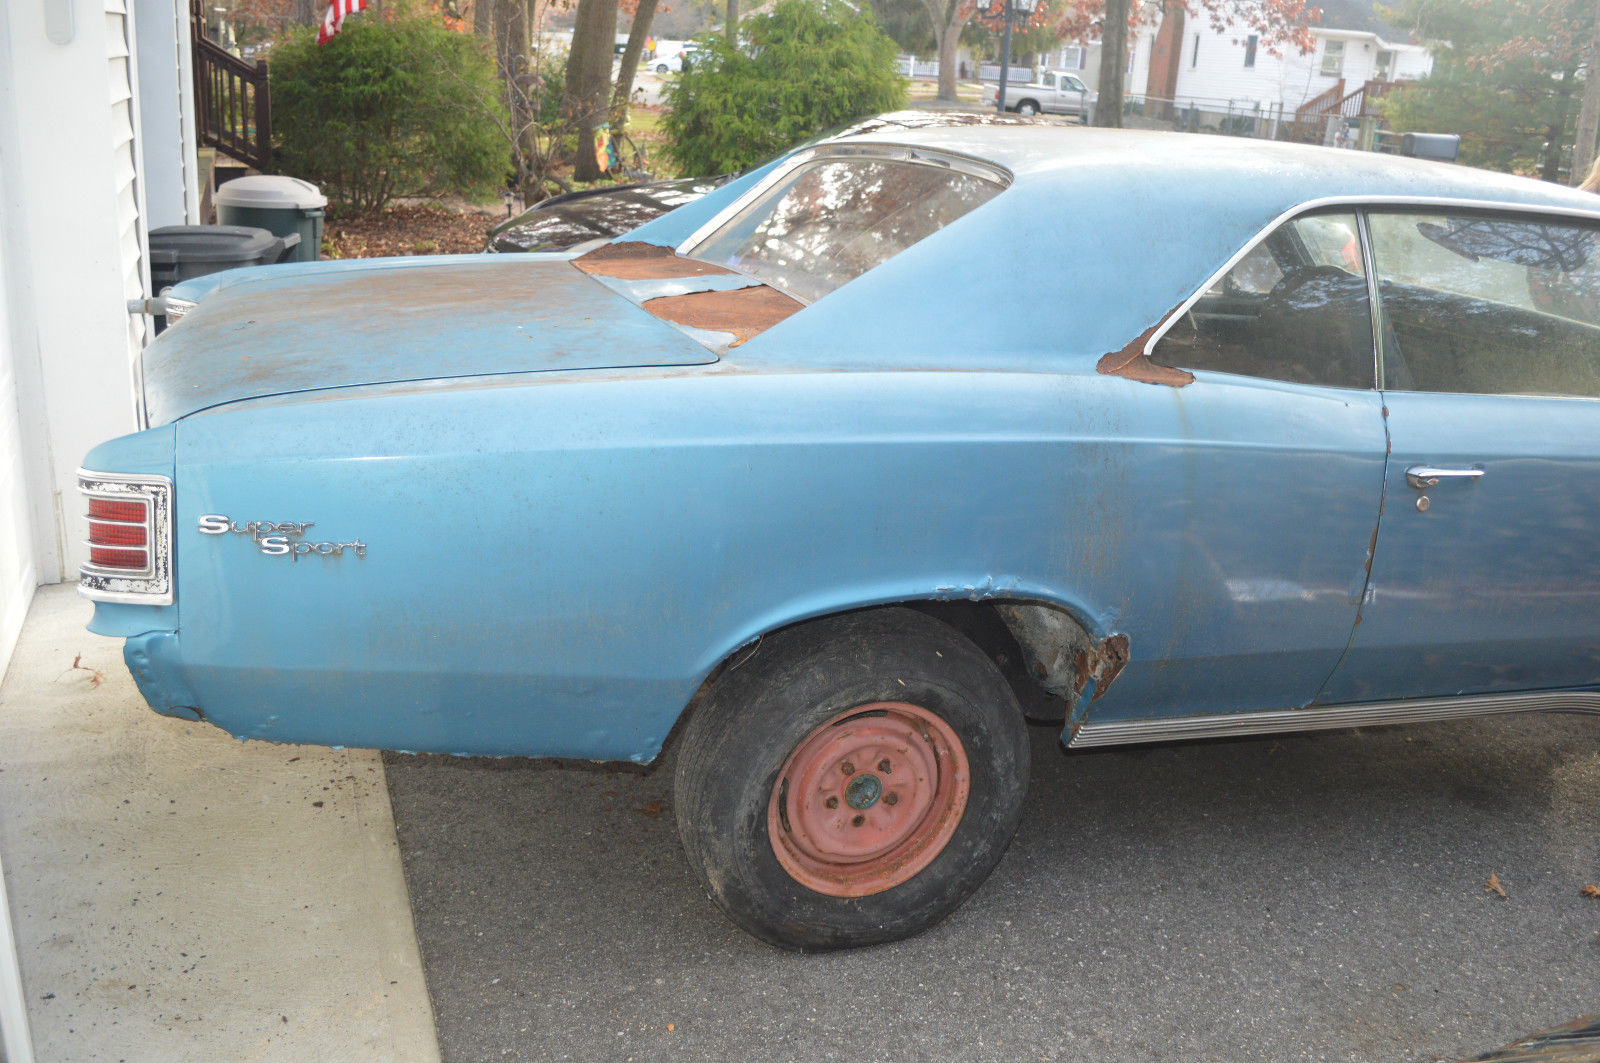 project chevelles for sale Muscle cars for sale muscle cars for sale 1971 cuda 528 hemi 4 speed 3009 muscle cars, vintage cars muscle cars for sale 1969 super bee project 6212.